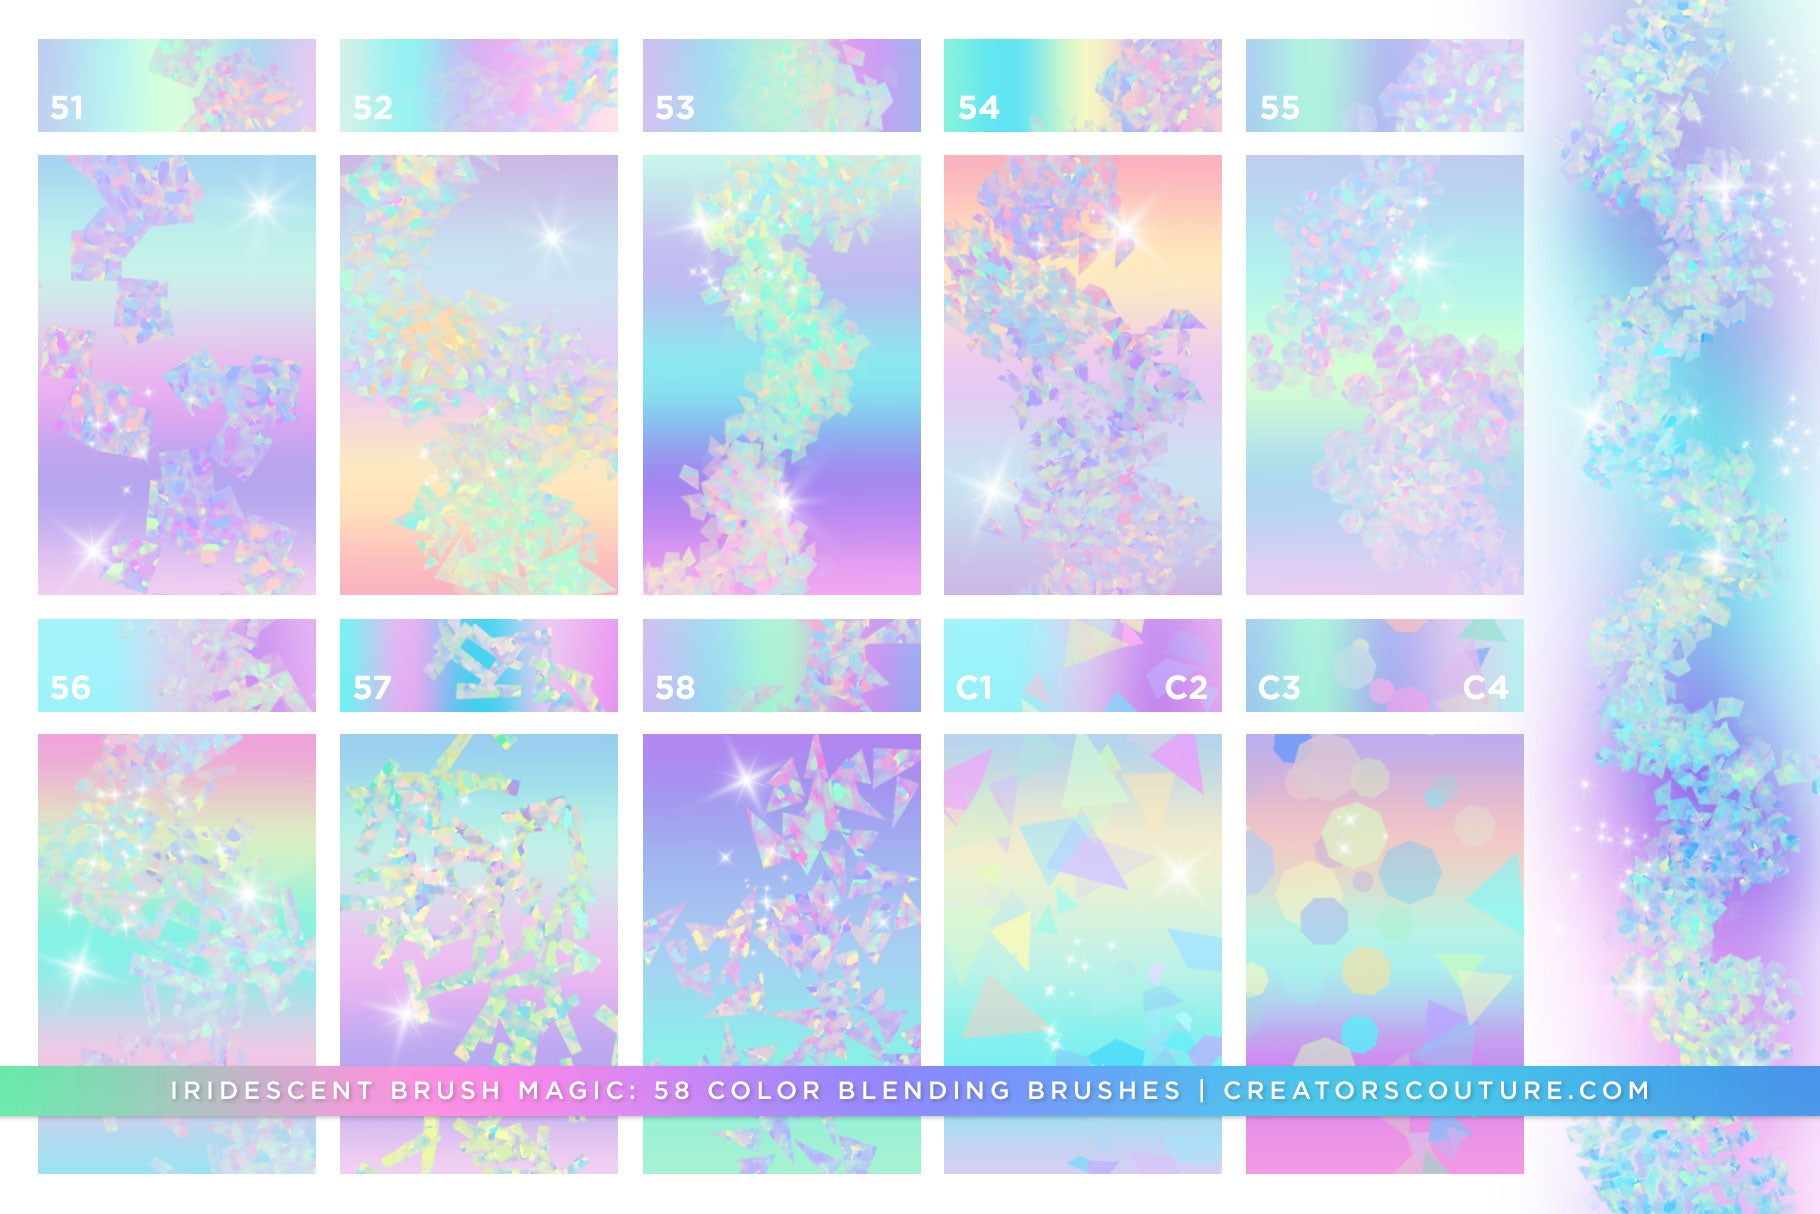 Iridescent & Holographic Photoshop Brushes, Color Palettes, & Effects, confetti brush preview 2